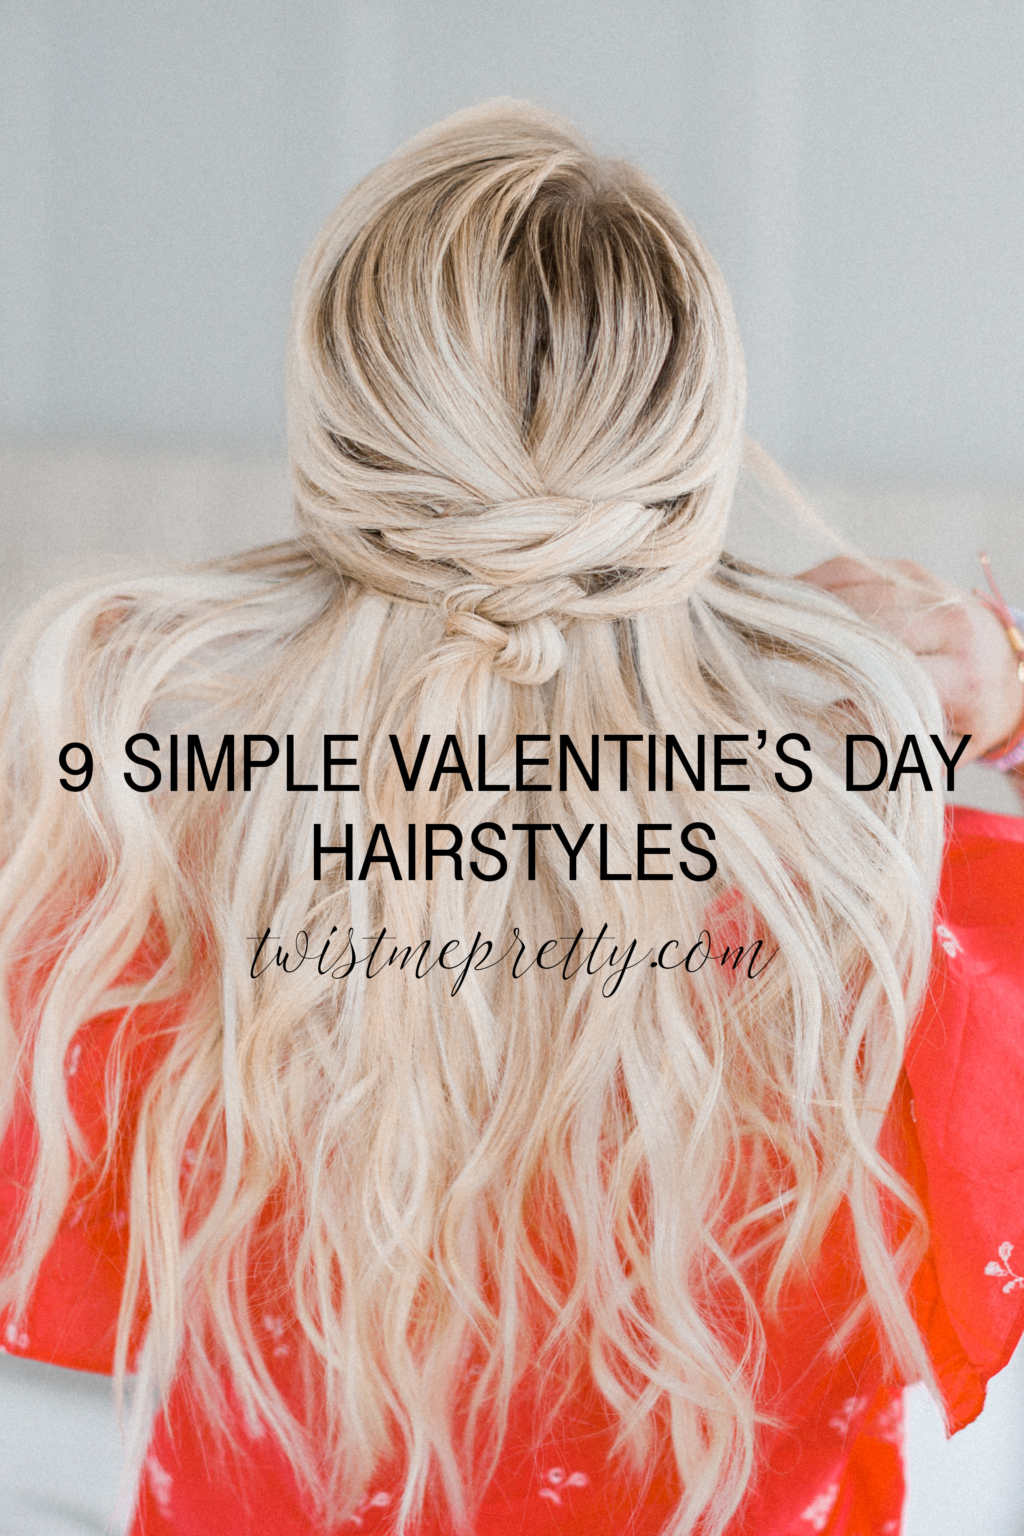 9 Quick Hairstyles For Valentines Day Style Round Up Twist Me Pretty